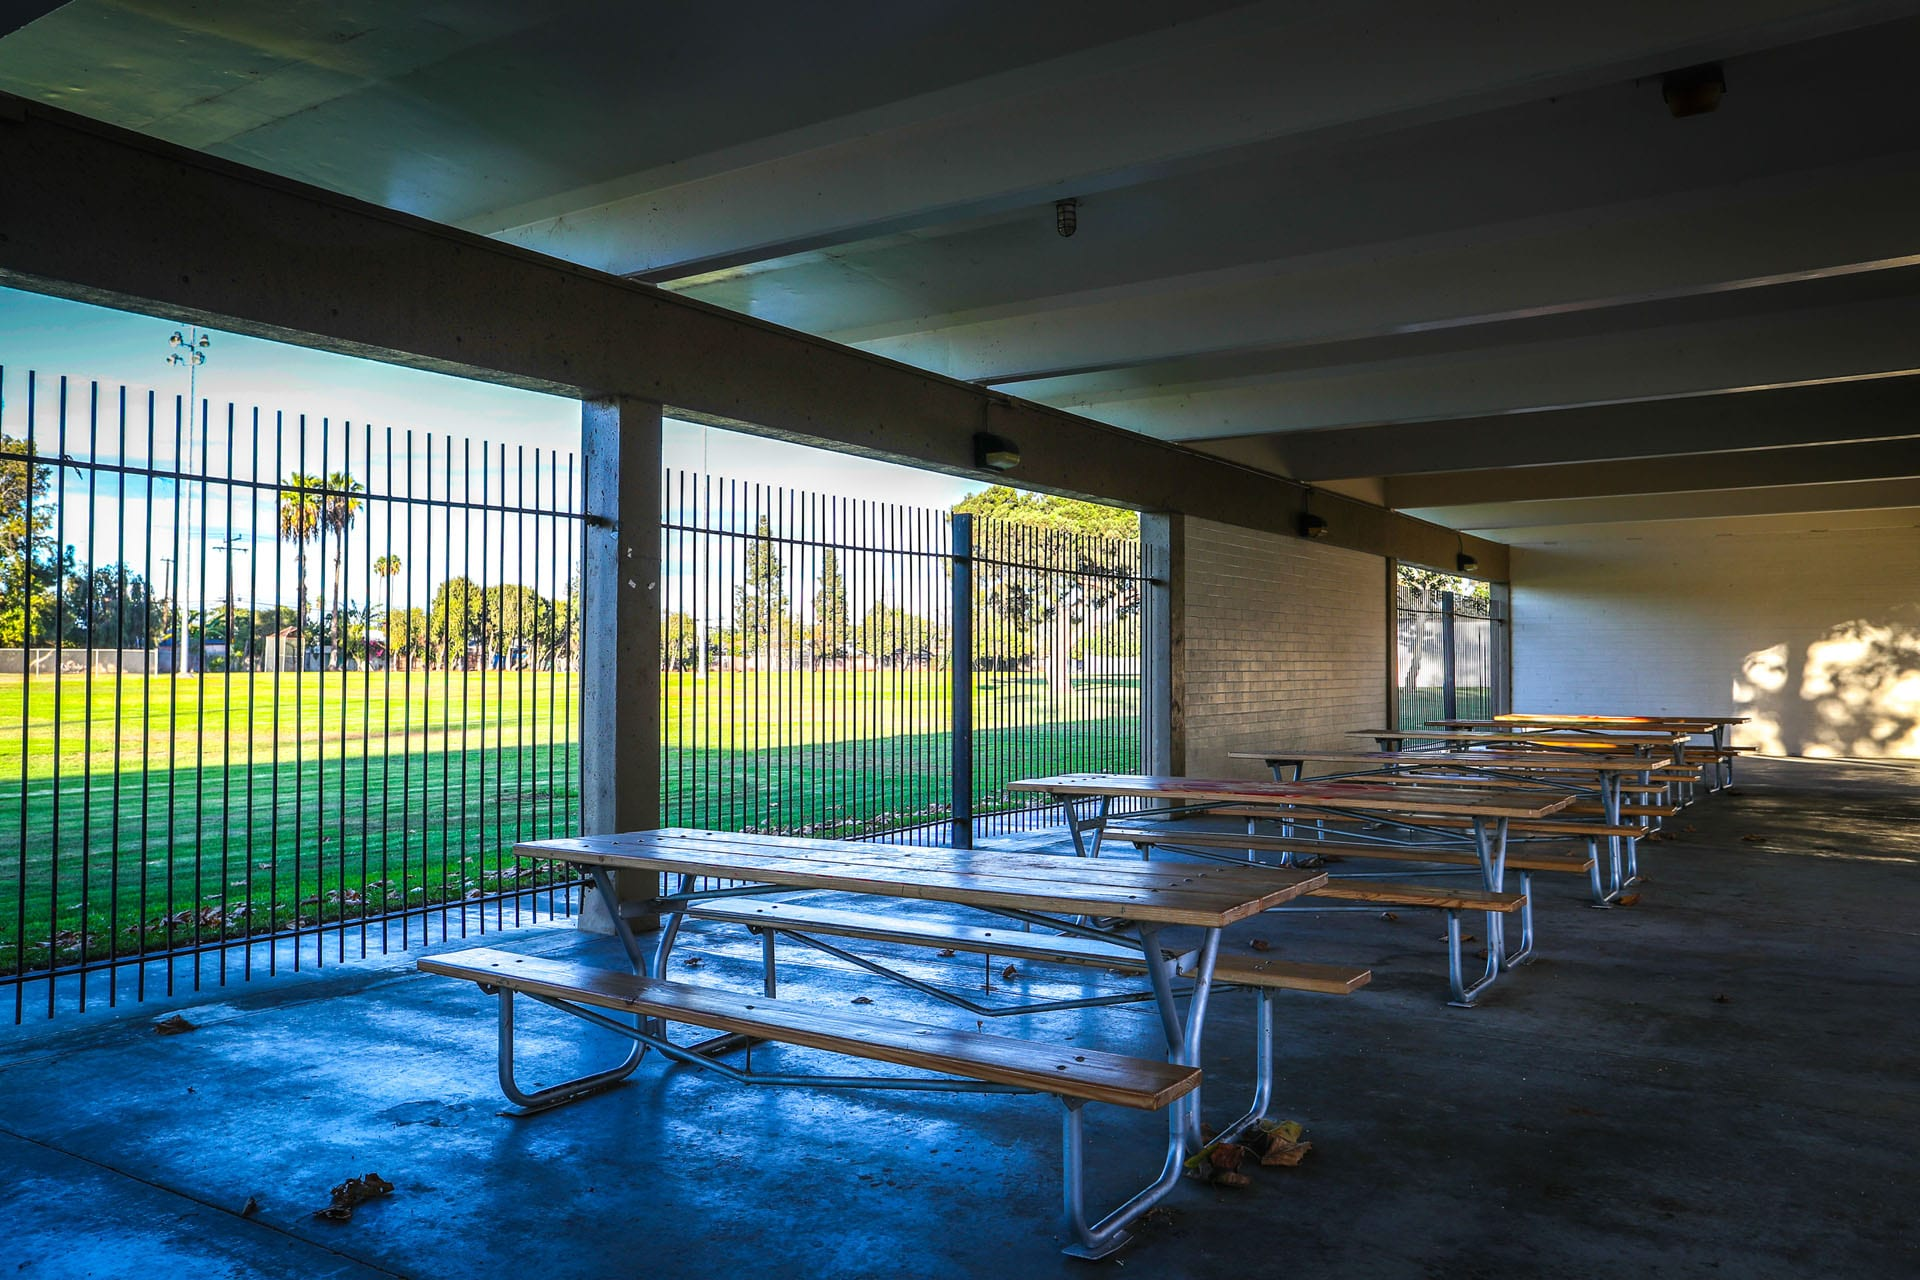 Sheltered picnic tables